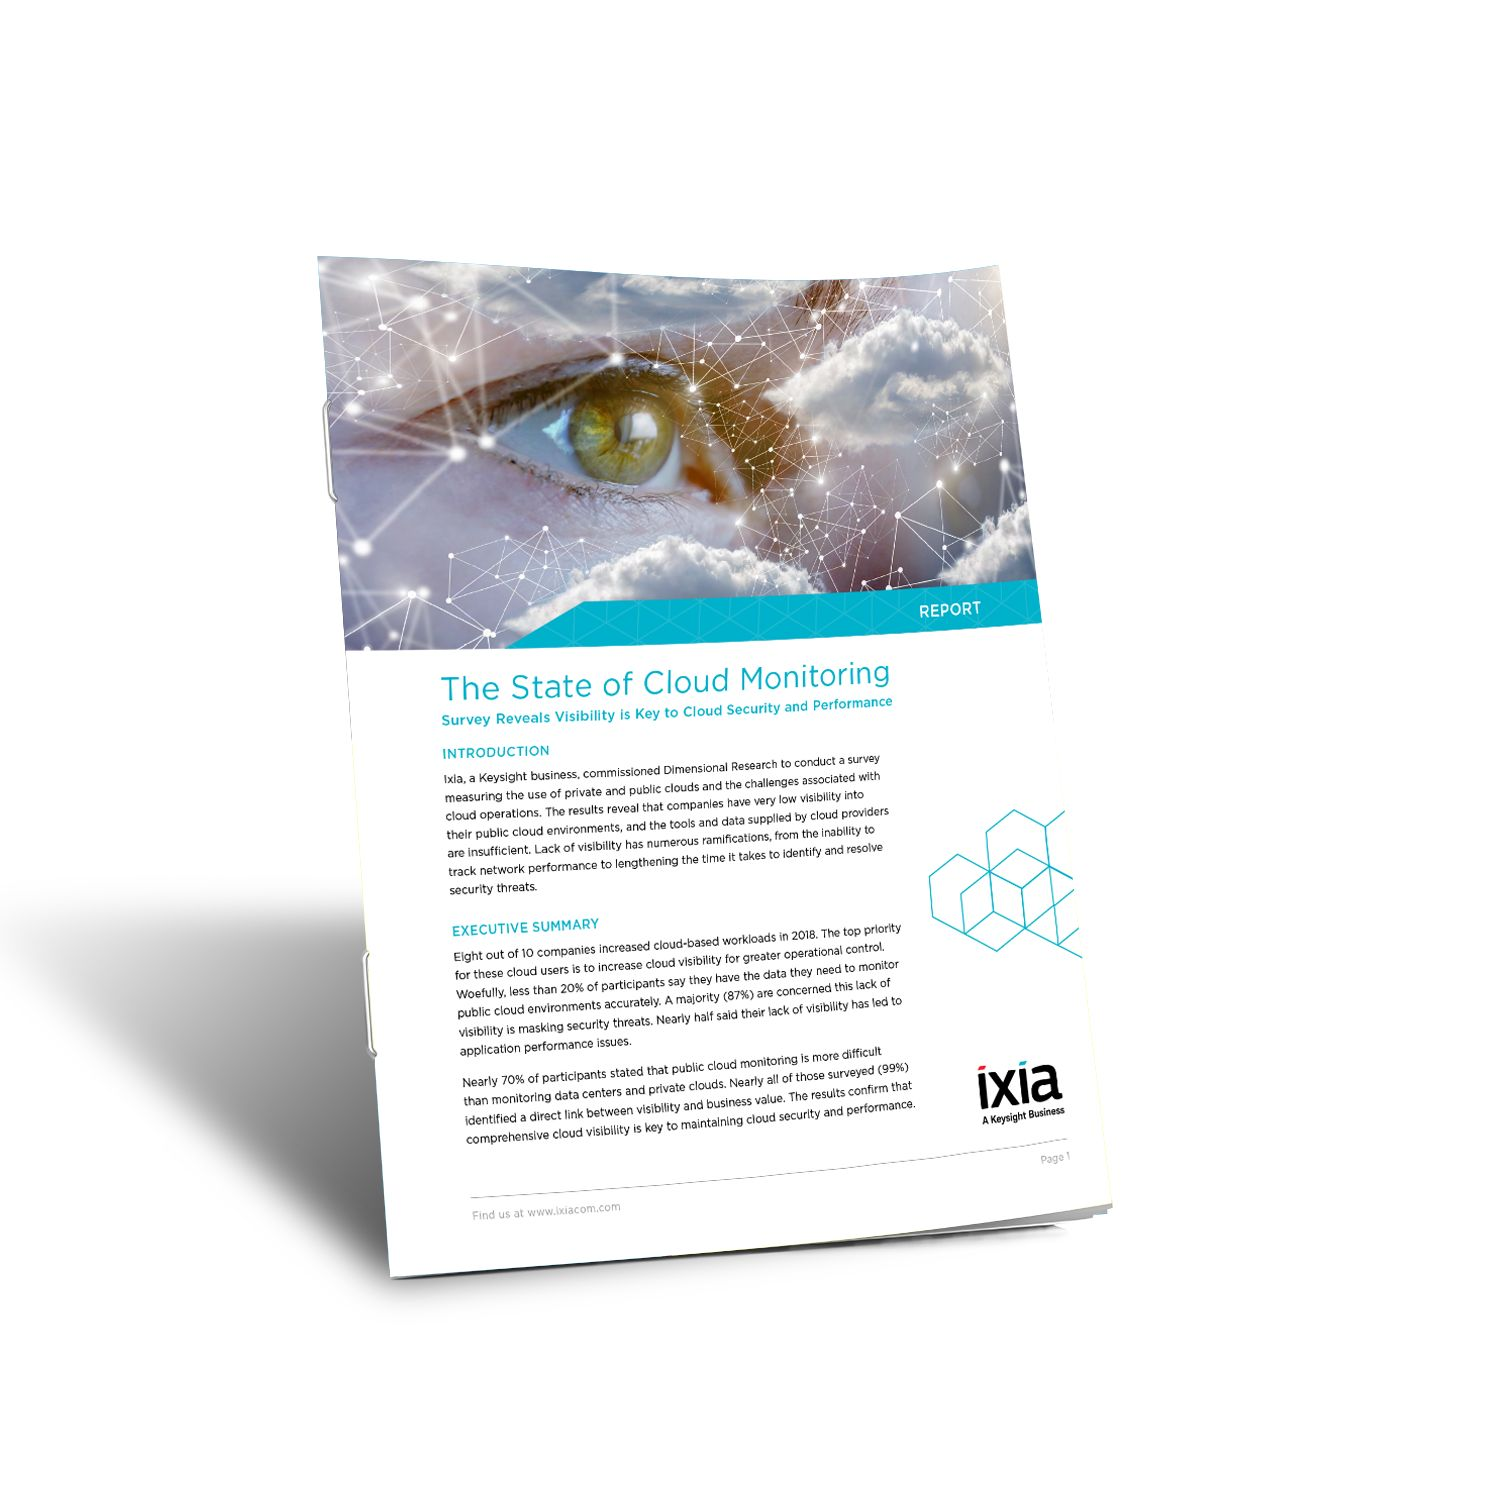 Report cover on The State of Cloud Monitoring